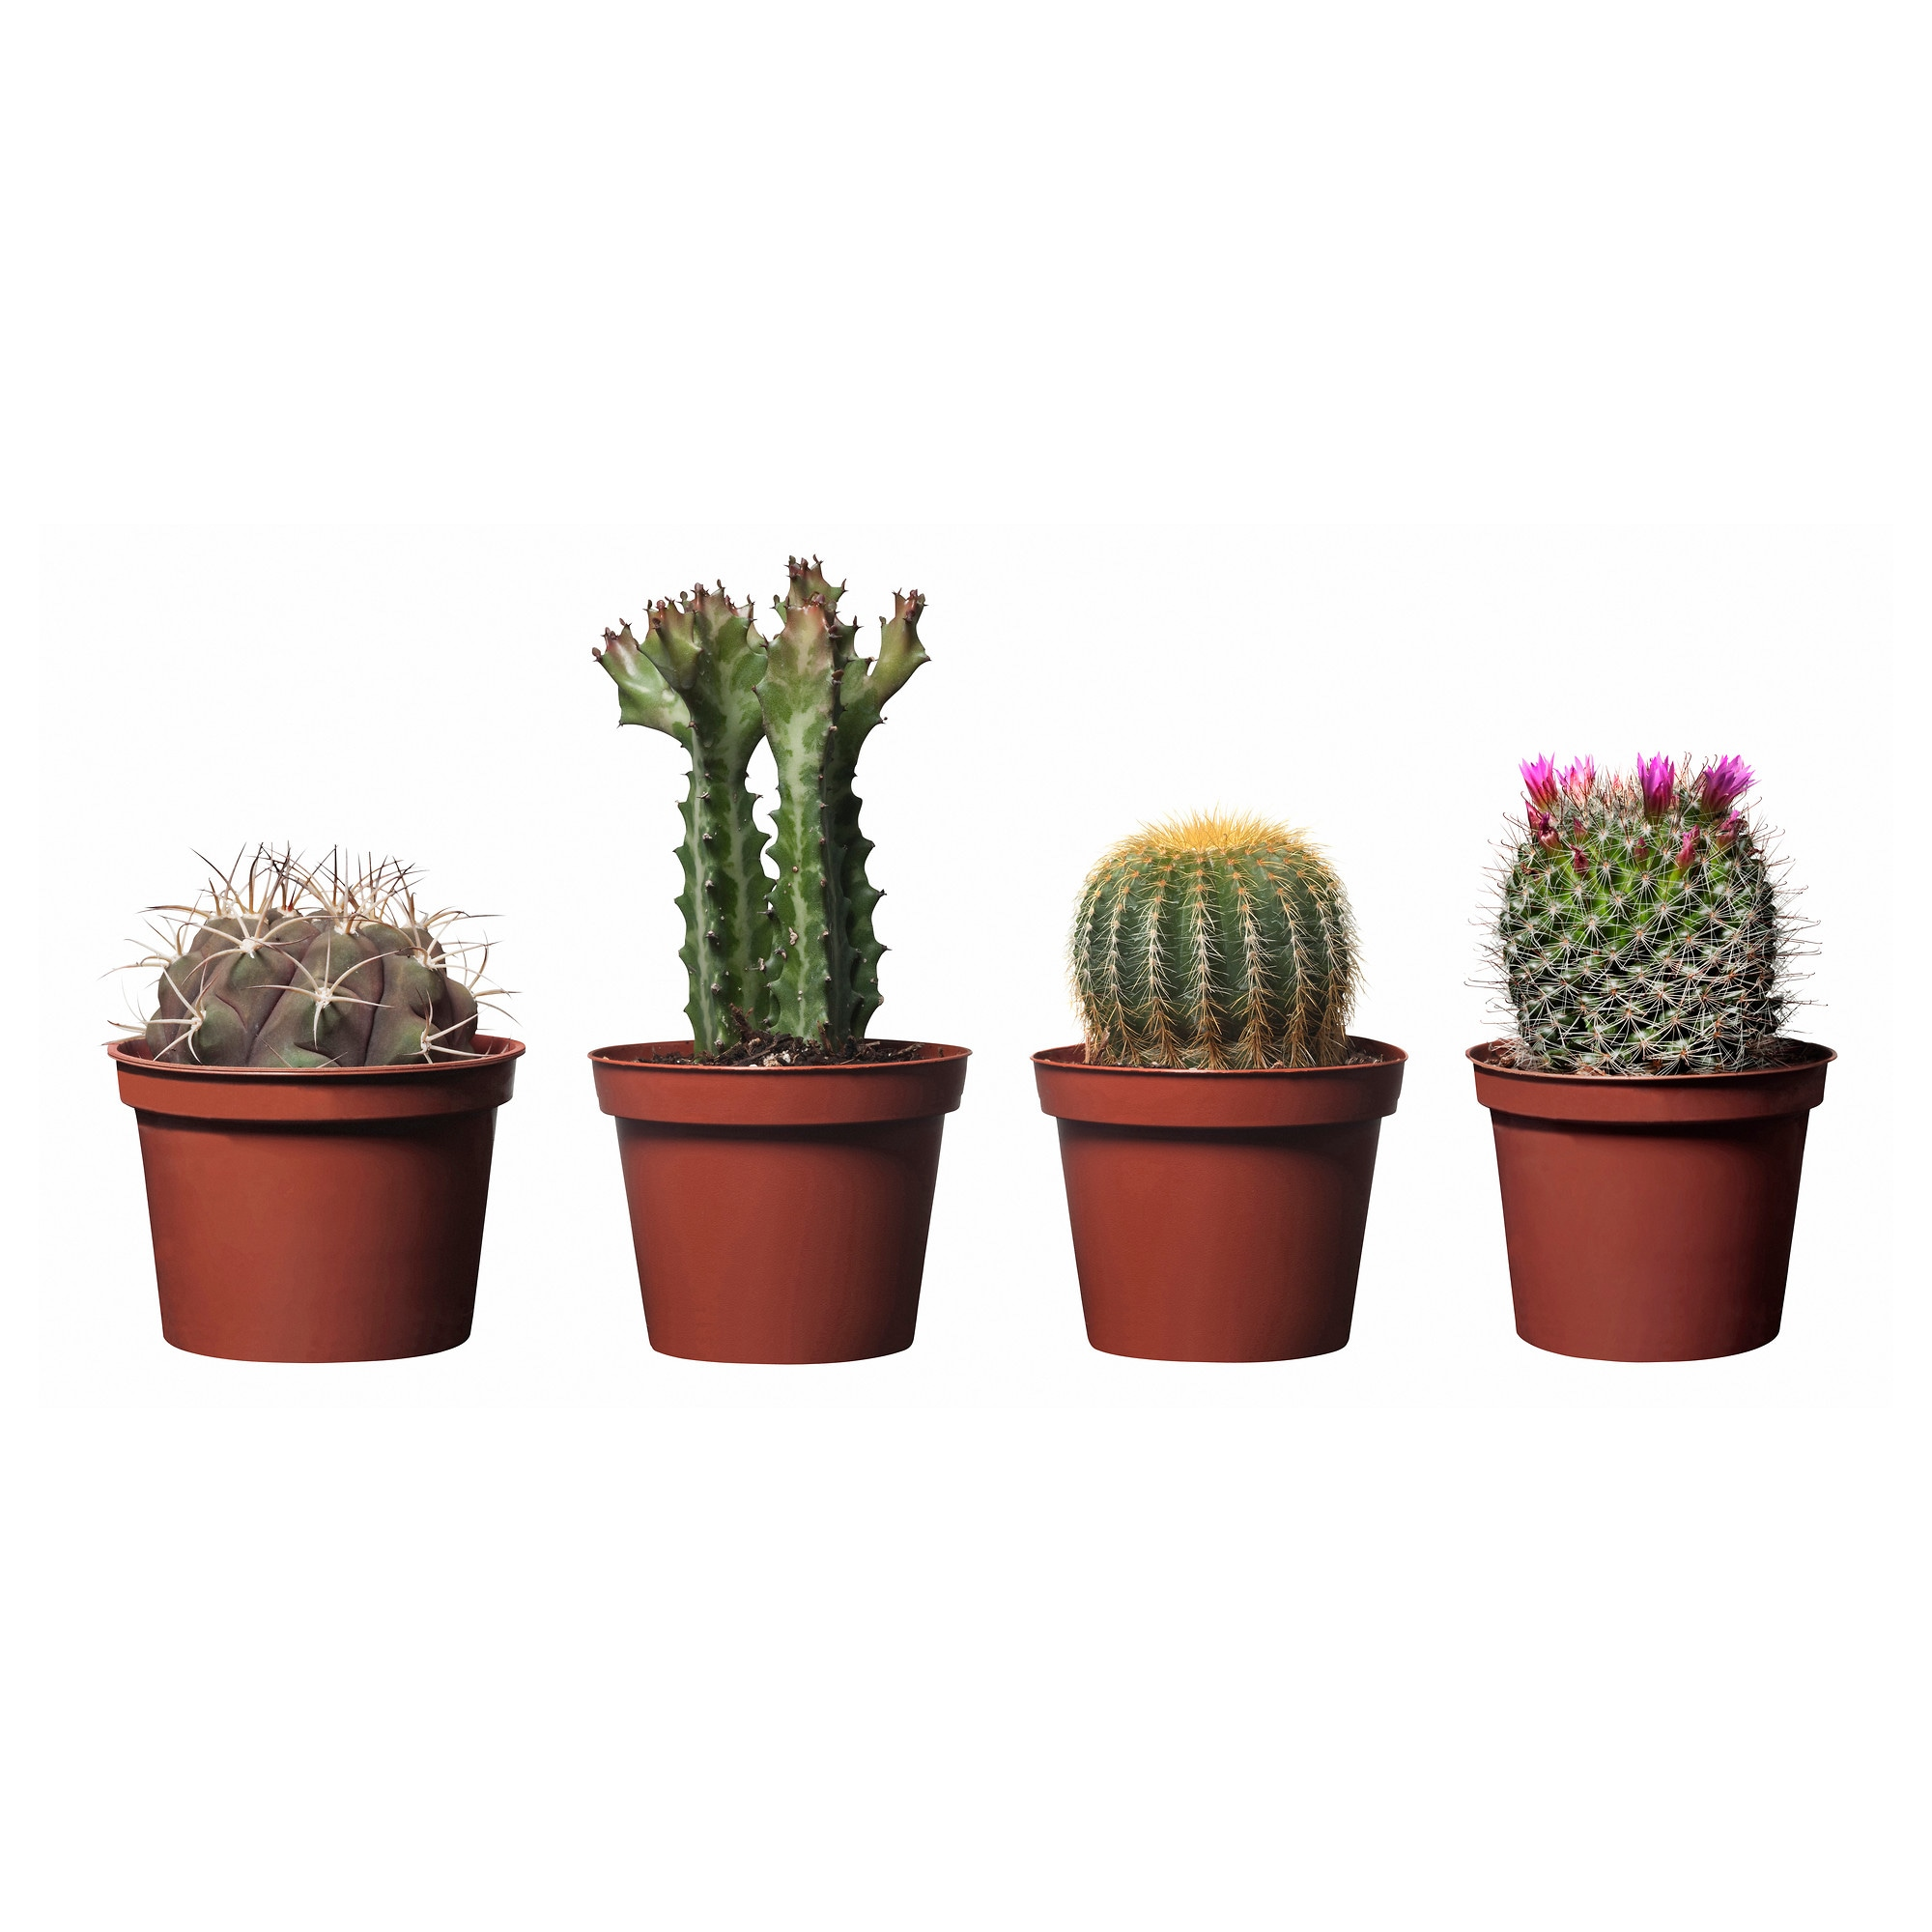 Types of house plant cactus pictures